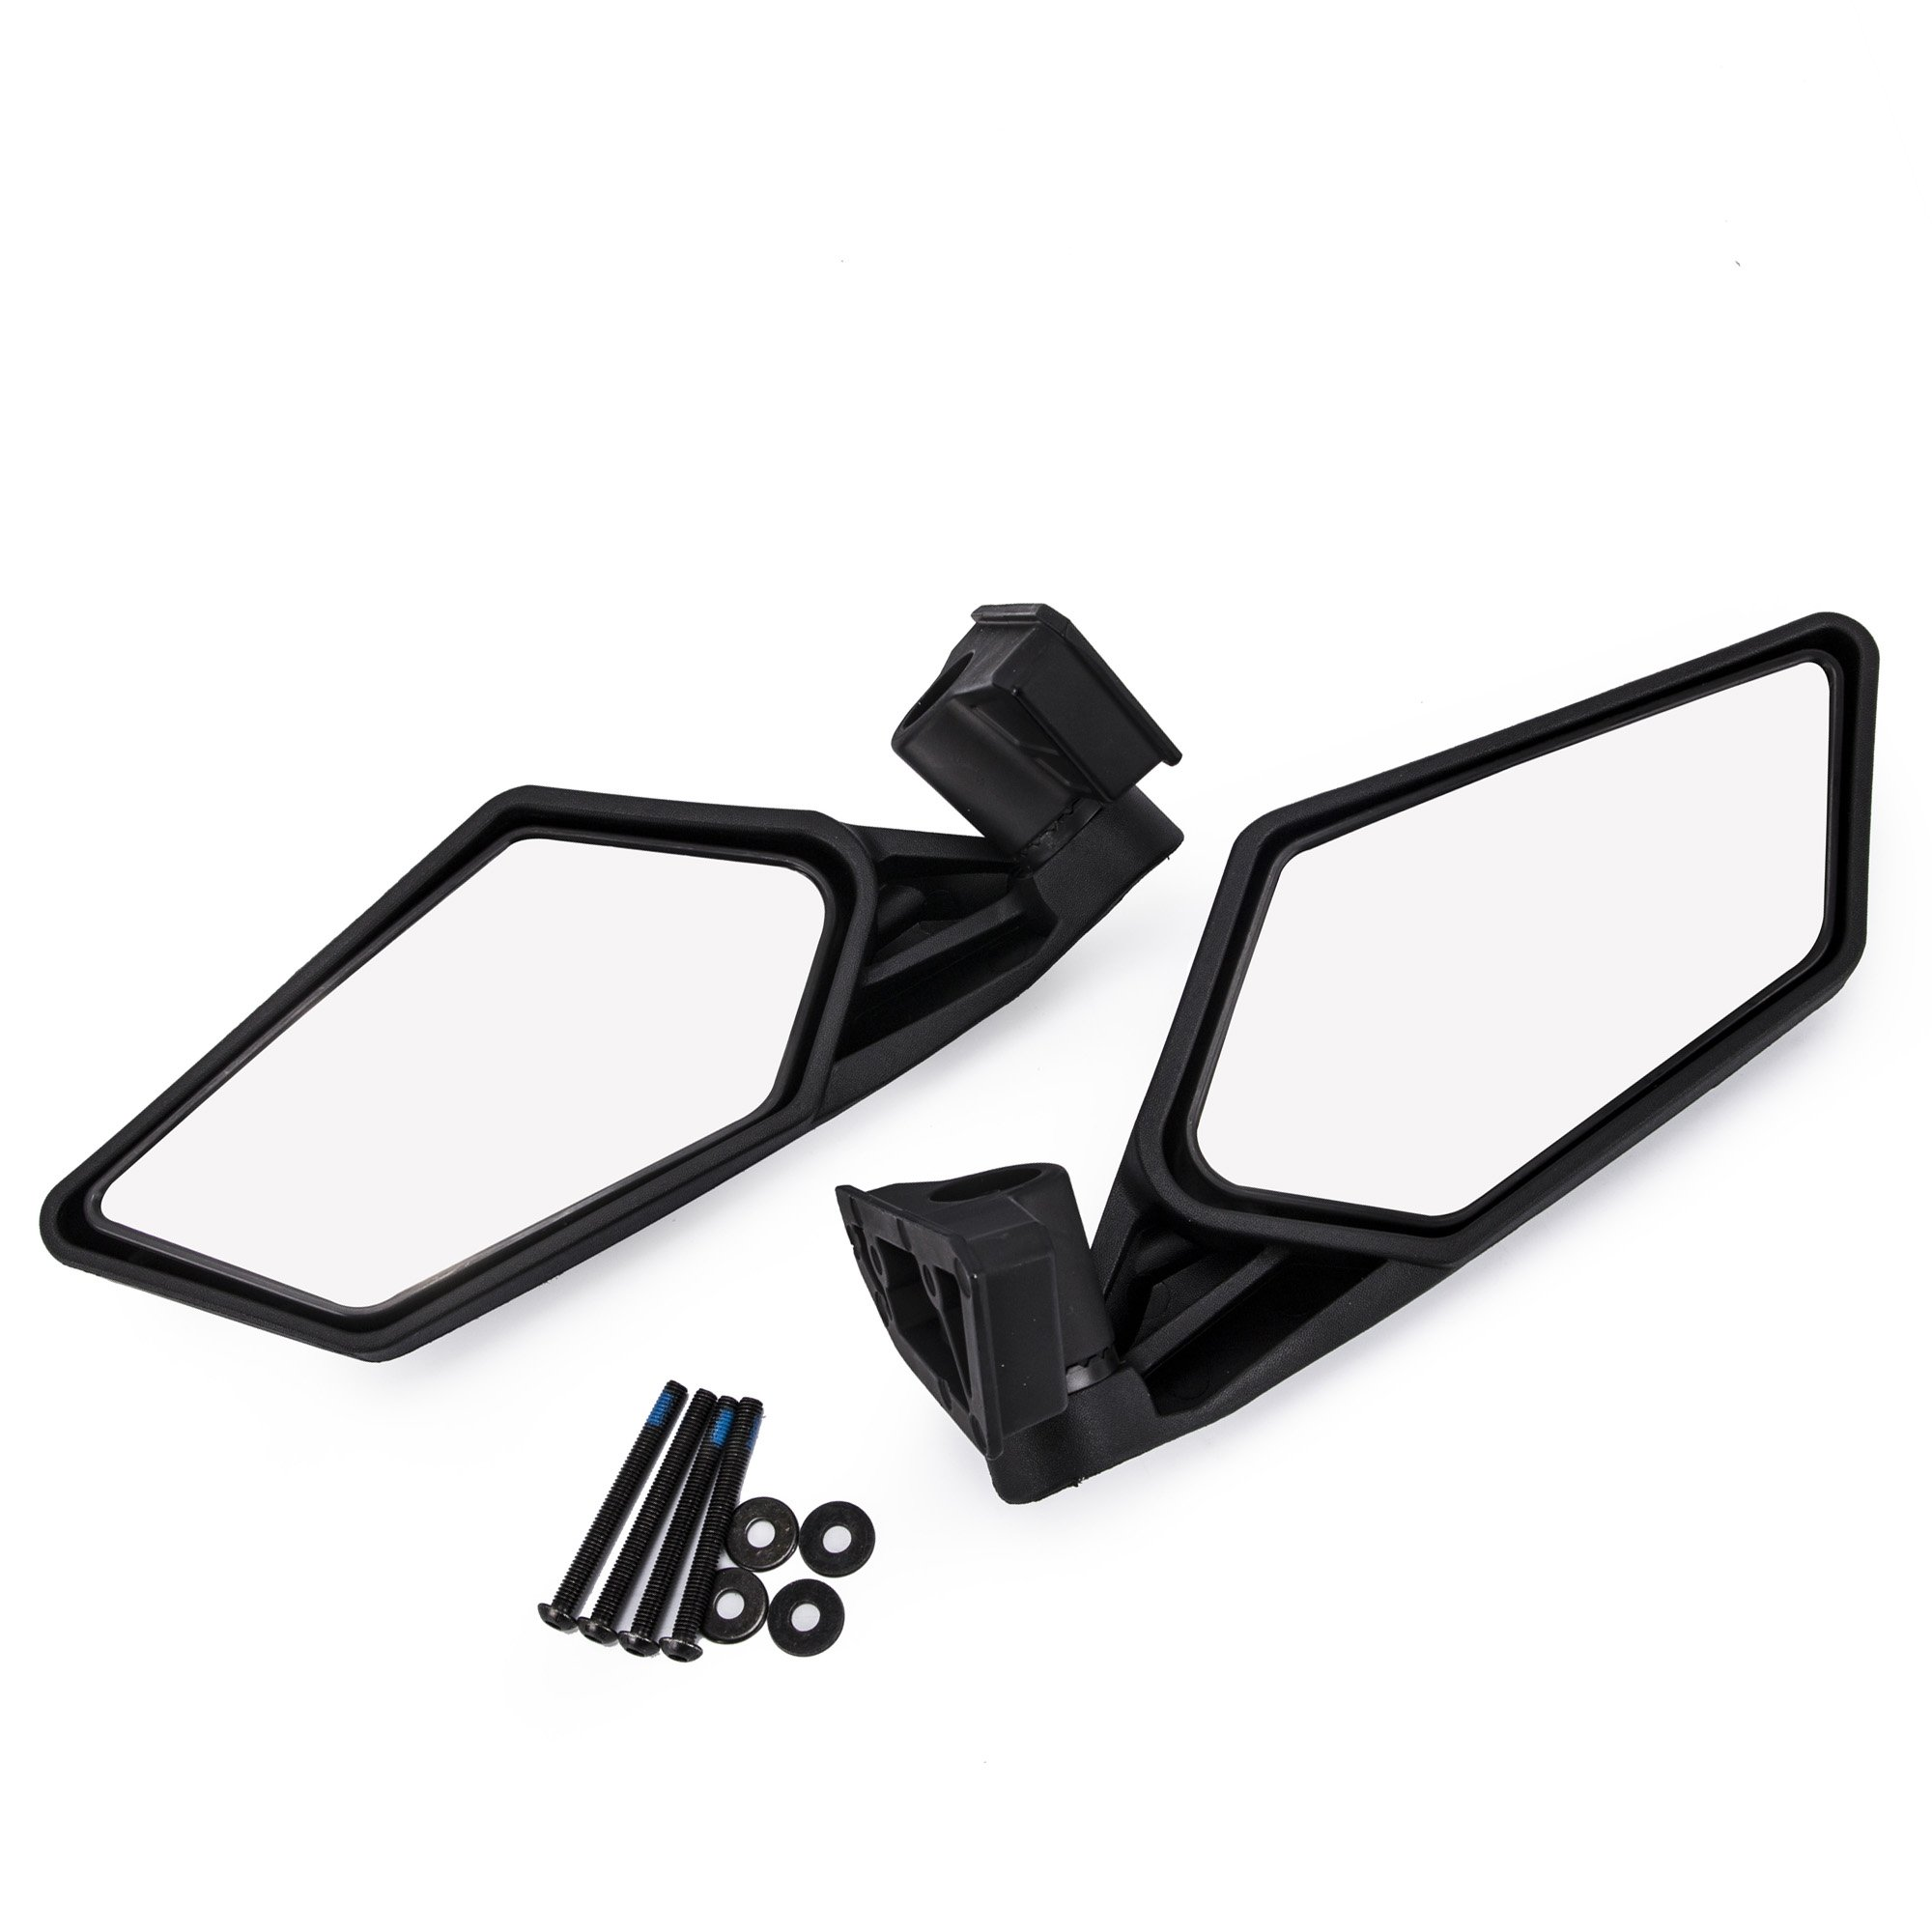 UTV Side Mirror Rear view Mirror Racing Side Mirrors for UTV Polaris RZR Can Am Maverick X3 2017 2018 Suzuki Quadracer 450 2006-2009 (Pair of mirror) by ANODIZING RACING